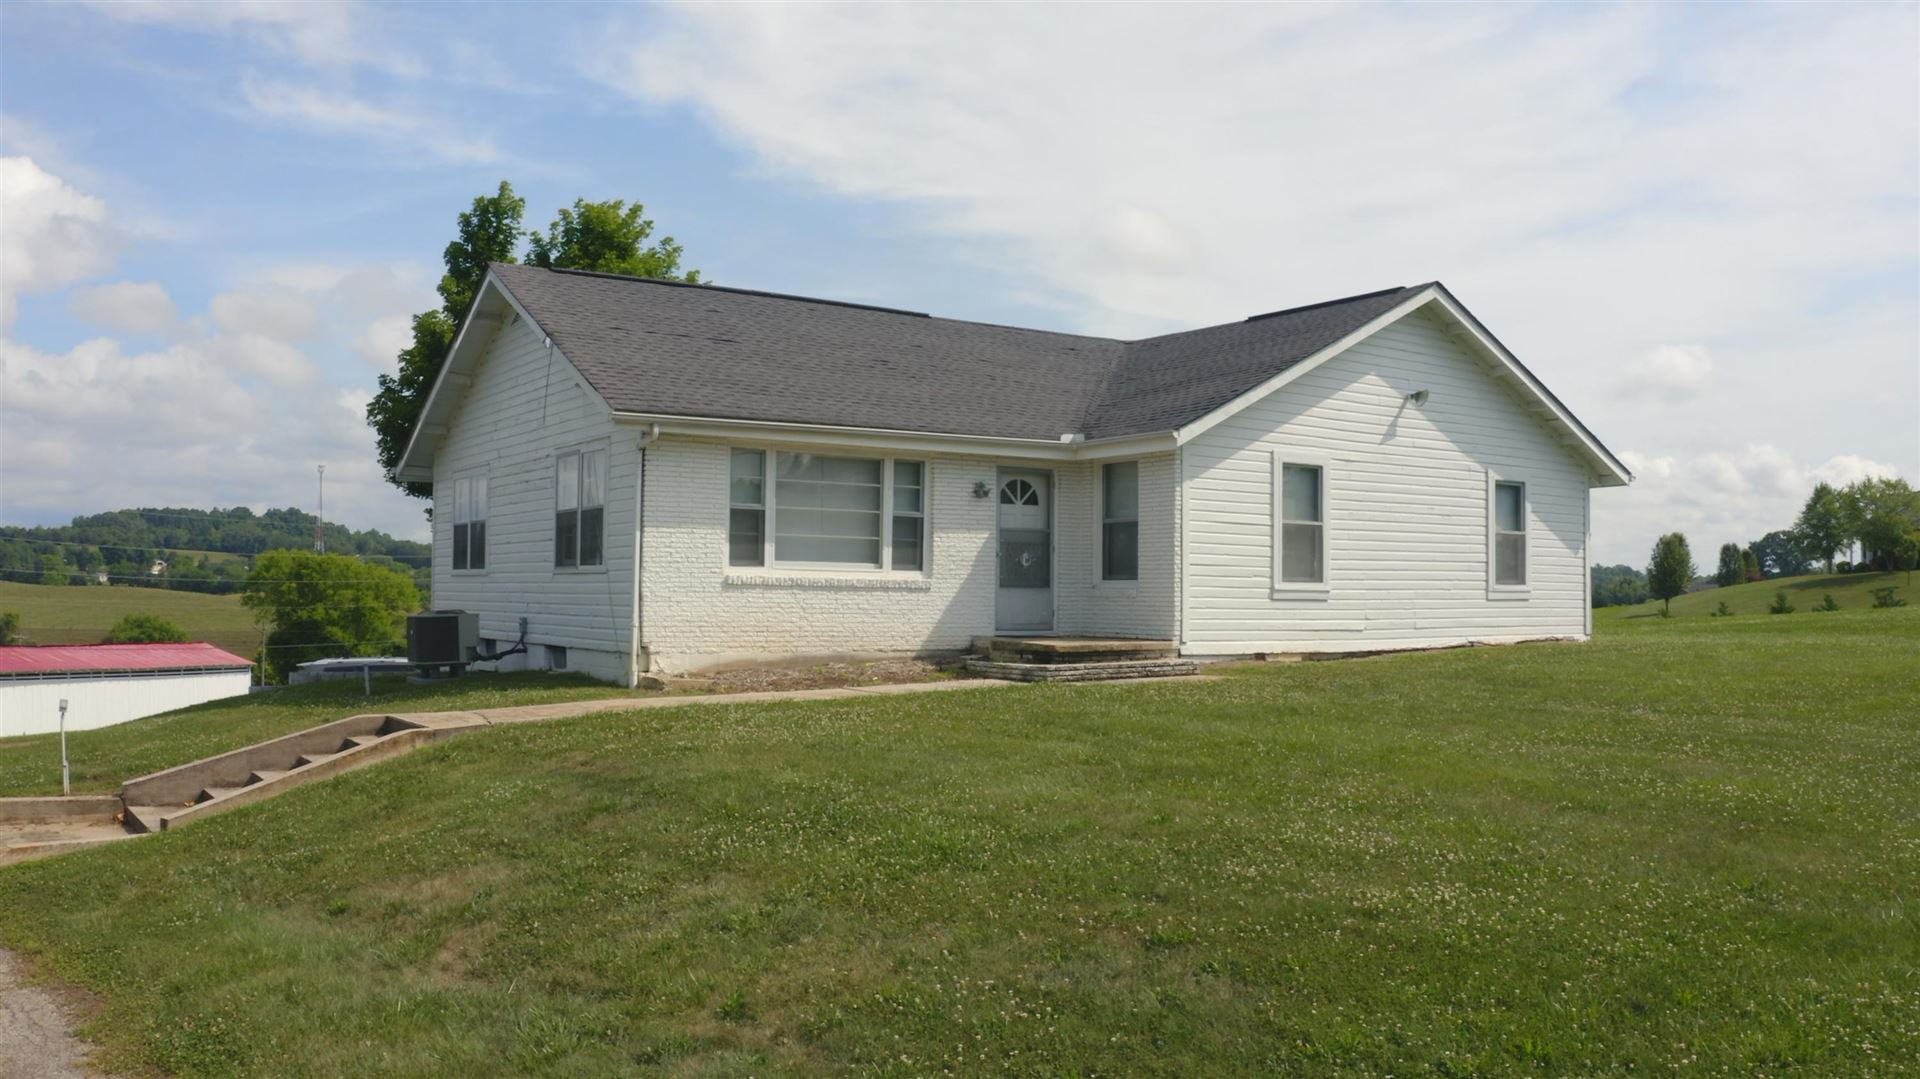 Photo of 5573 Leepers Ferry Road, White Pine, TN 37890 (MLS # 9923829)